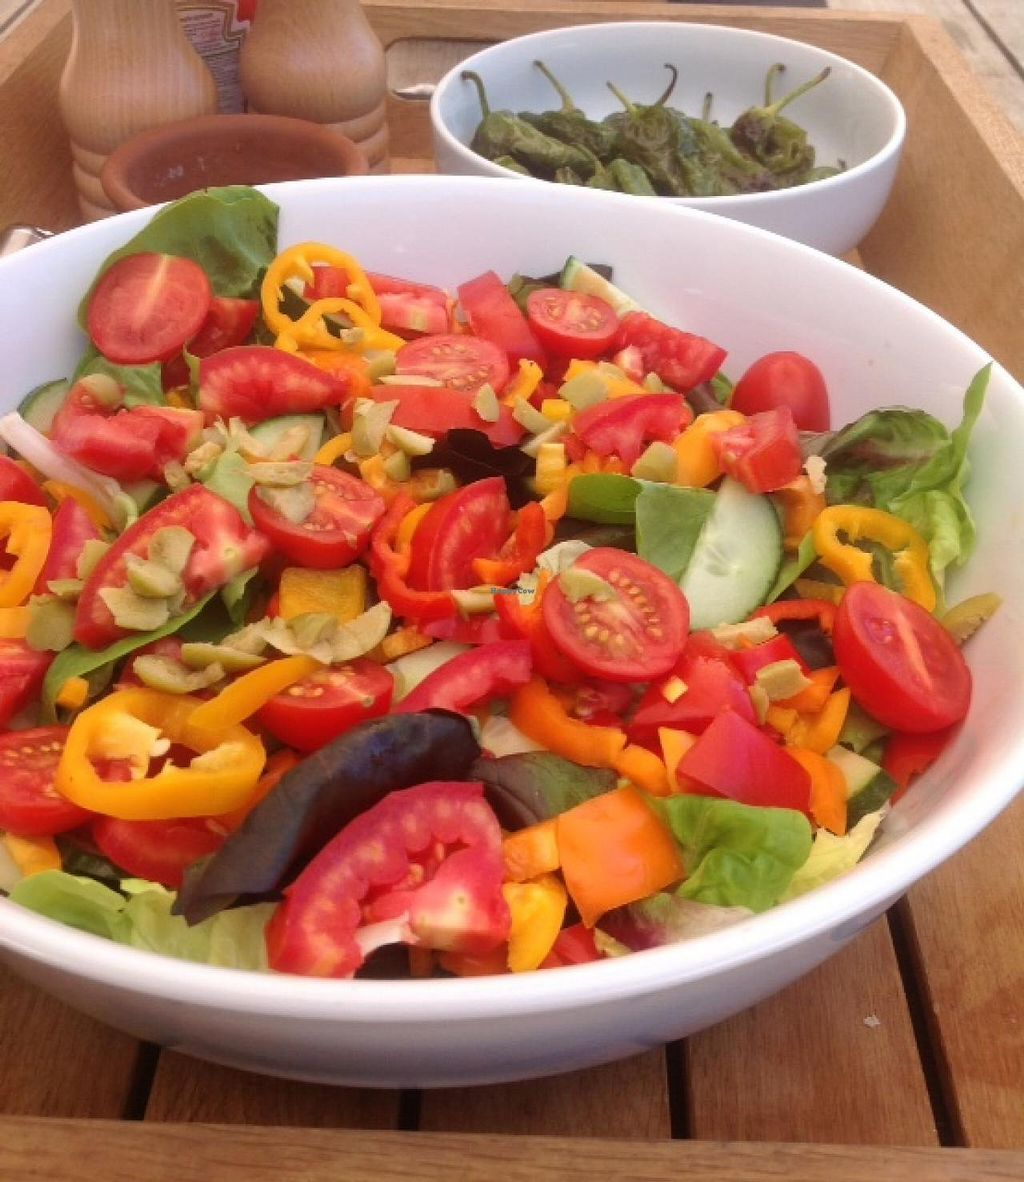 """Photo of Sun Yoga KL Cafe  by <a href=""""/members/profile/SunYogaKLcafe"""">SunYogaKLcafe</a> <br/>Colourful Spanish salad <br/> January 6, 2014  - <a href='/contact/abuse/image/44479/61938'>Report</a>"""